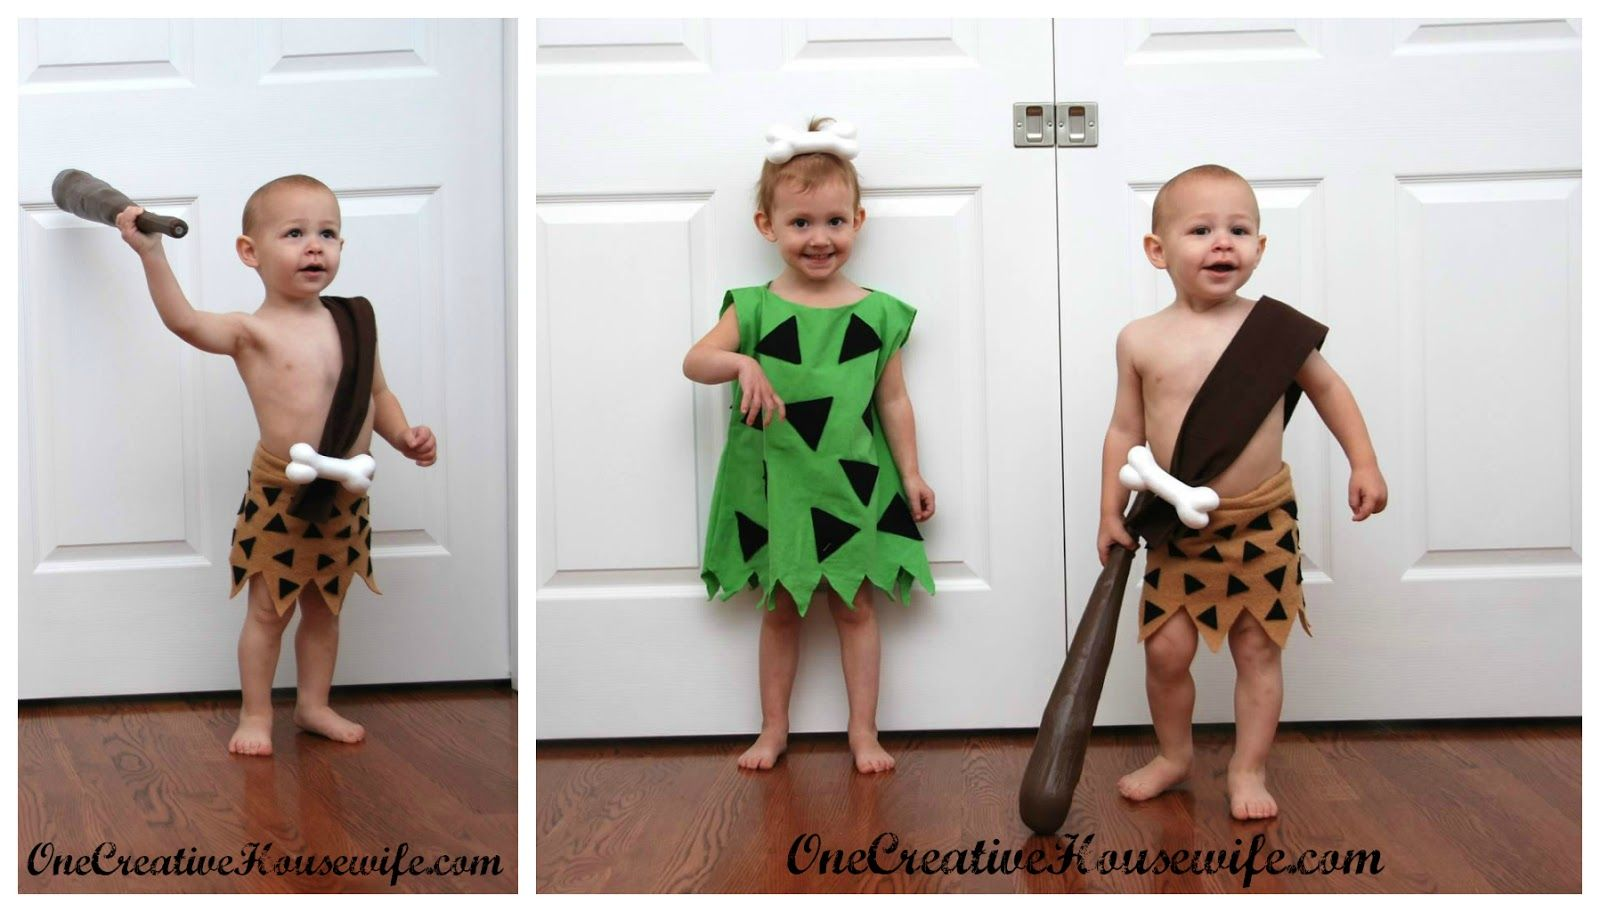 pebbles and bam bam halloween costumes for kids timykids pebbles and bam bam halloween costumes for kids timykids